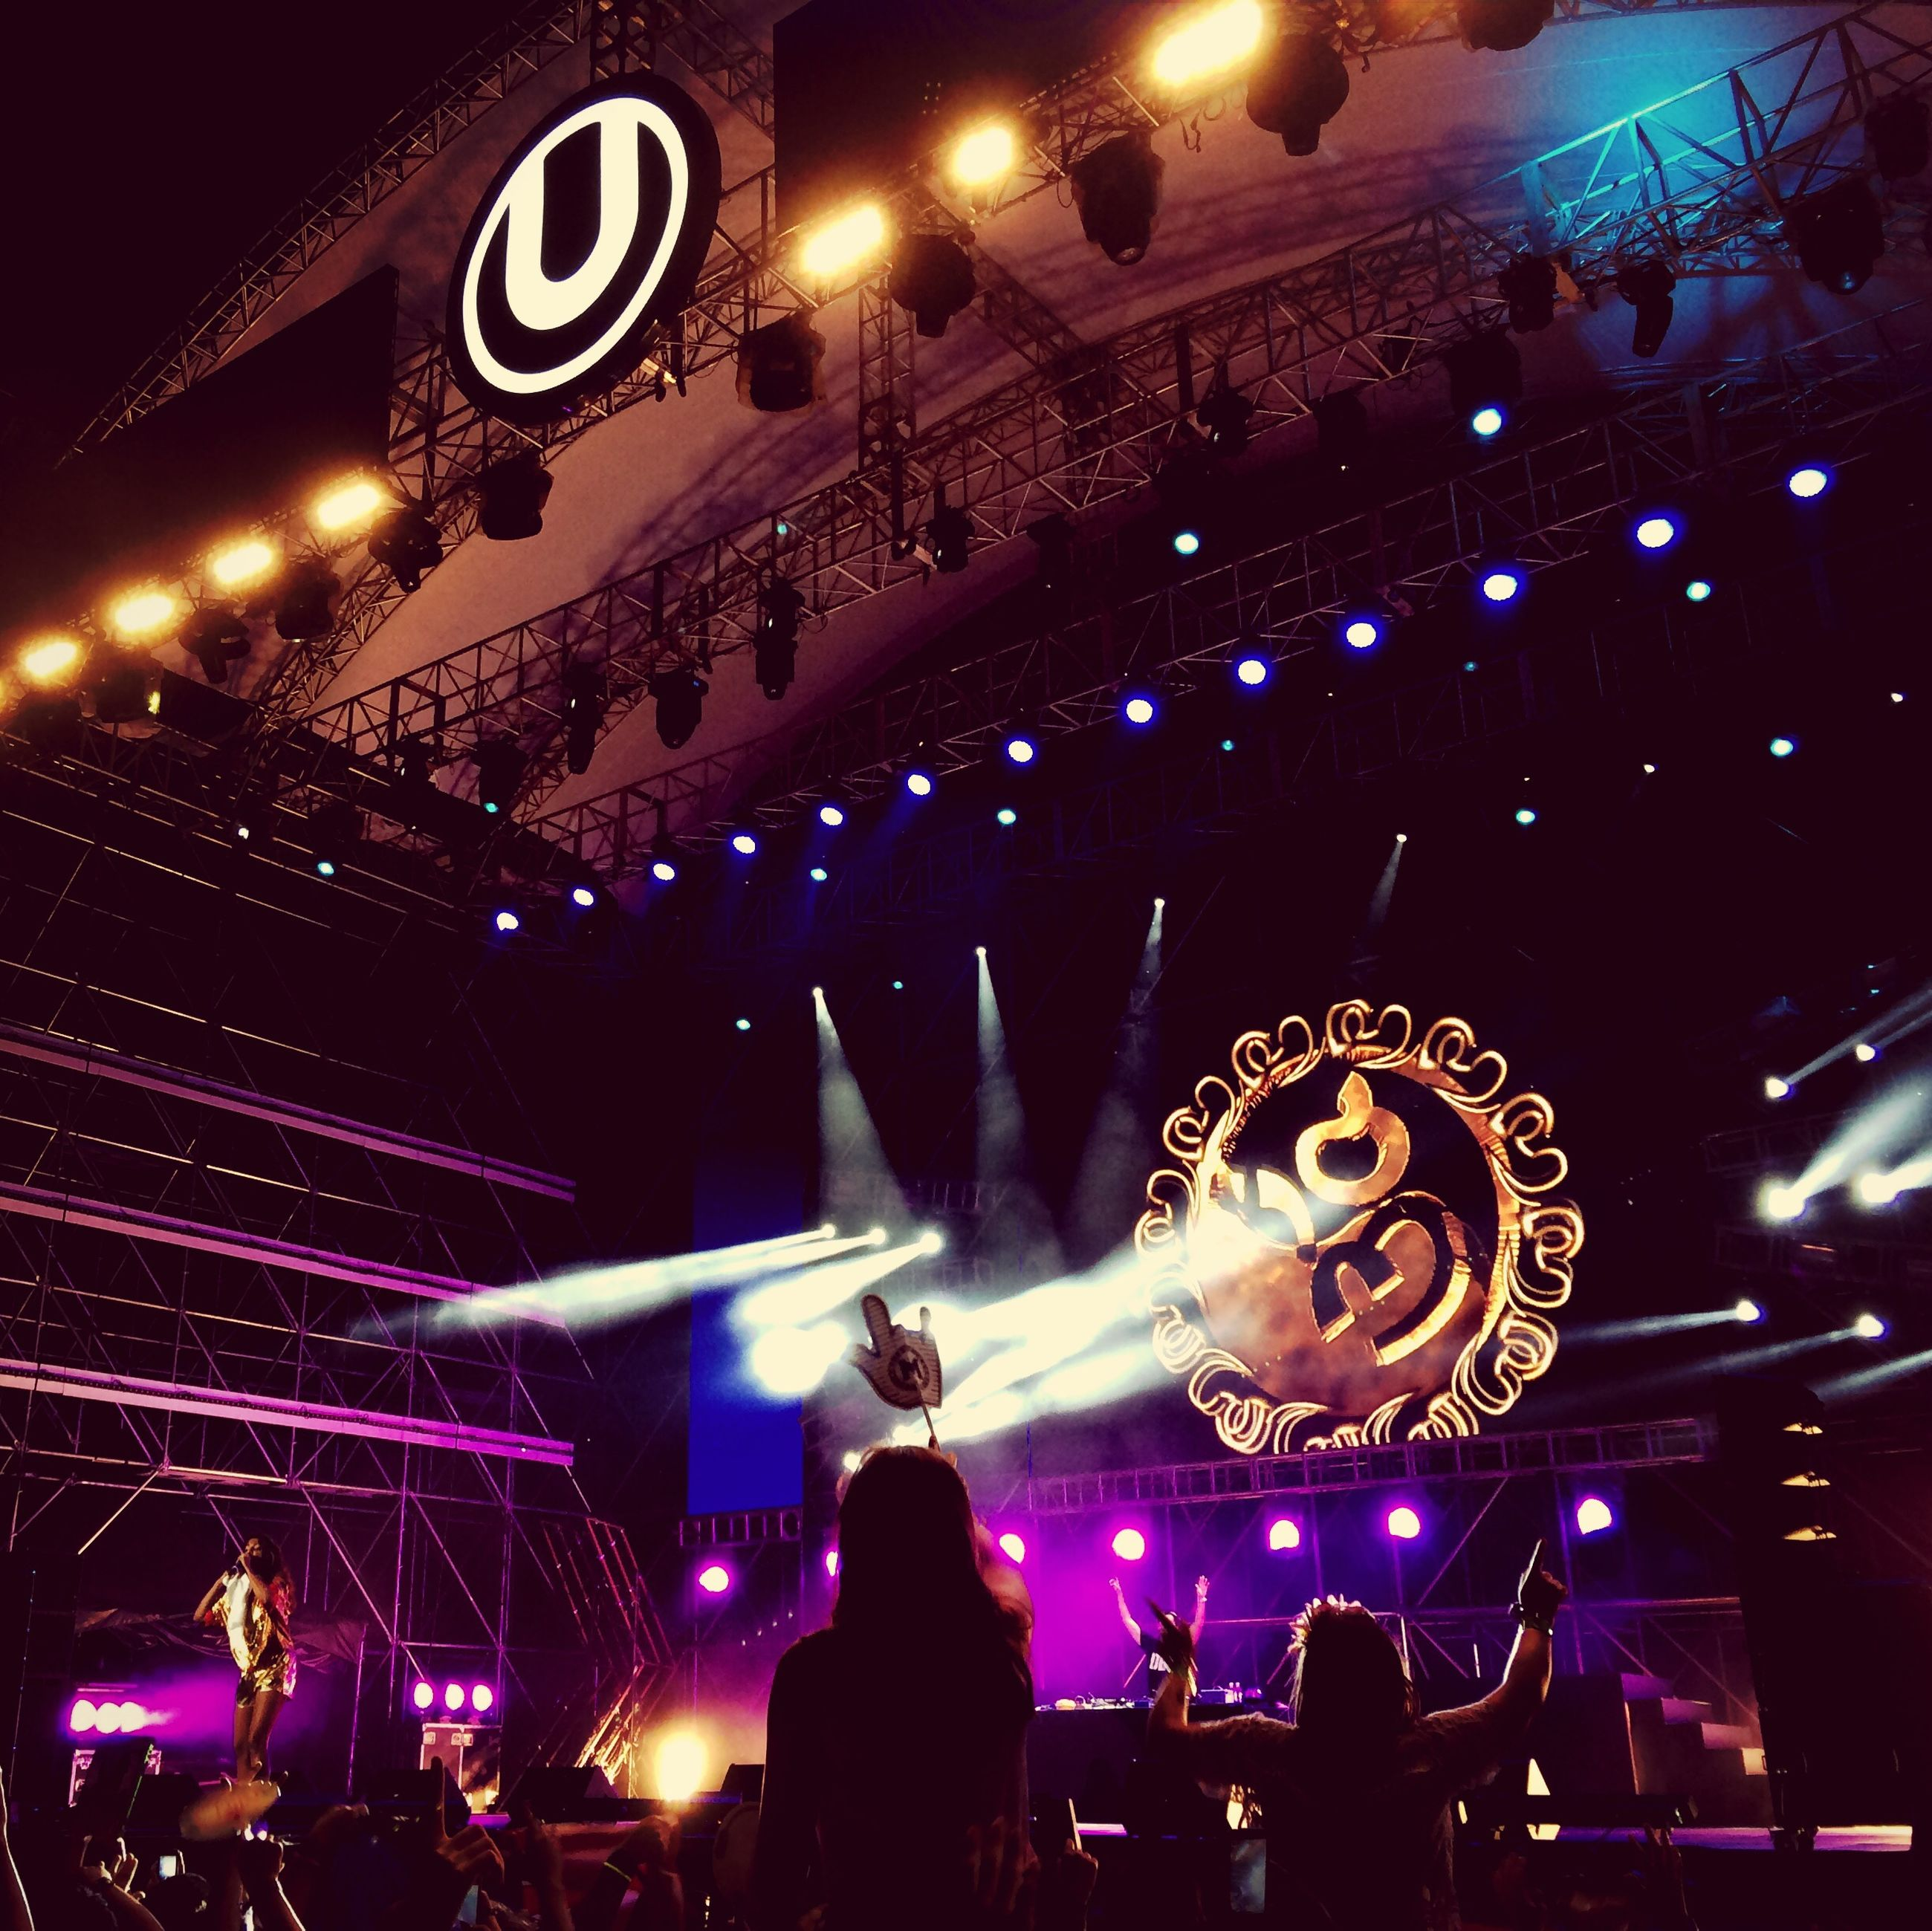 illuminated, night, arts culture and entertainment, music, large group of people, event, men, lifestyles, celebration, leisure activity, enjoyment, performance, nightlife, crowd, stage - performance space, music festival, concert, motion, stage light